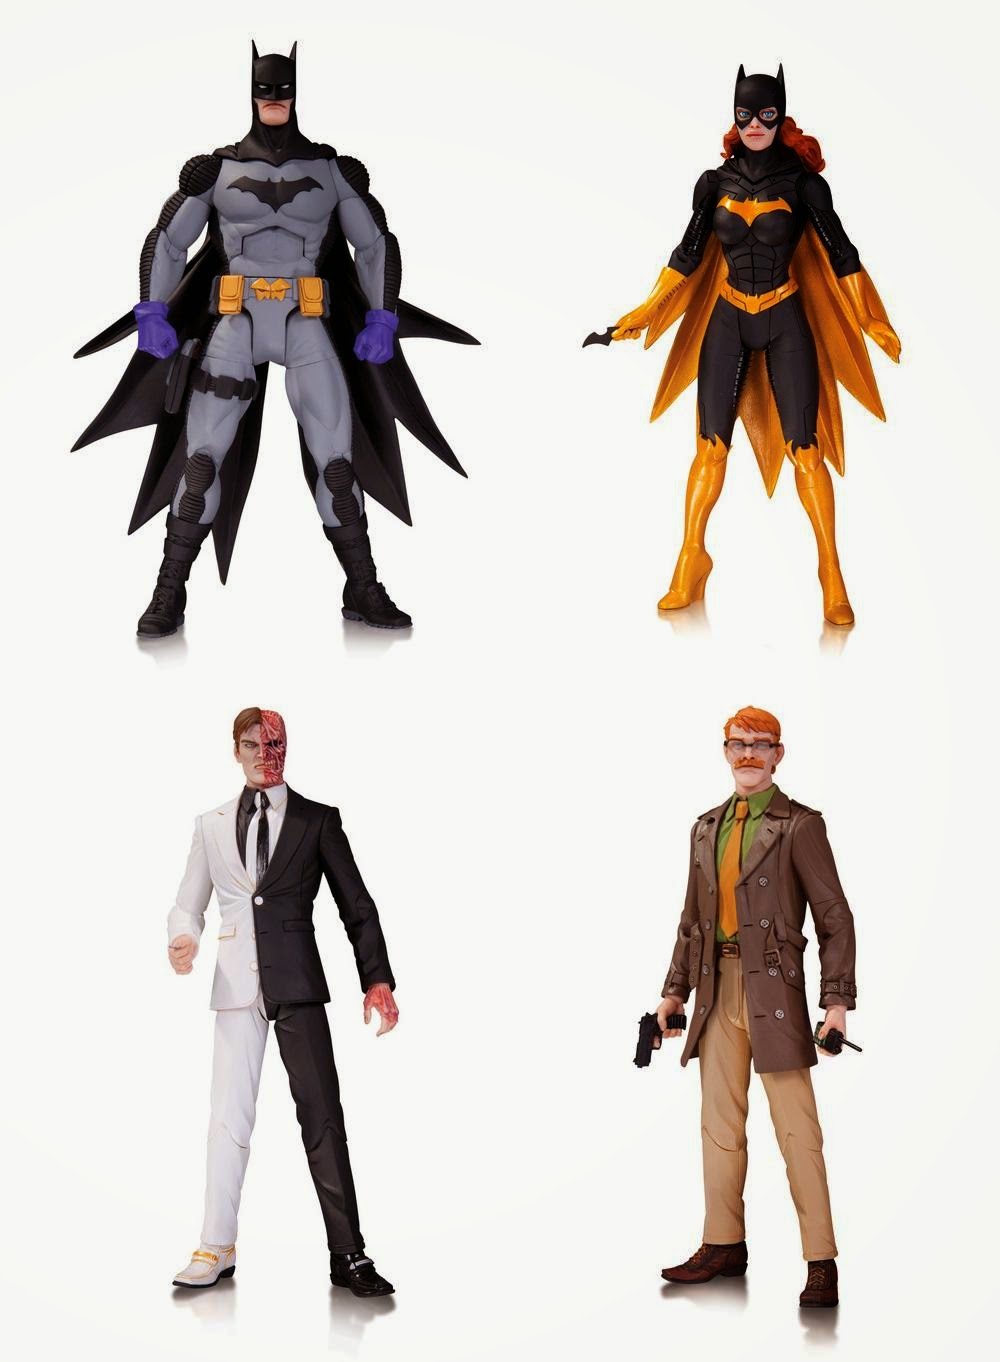 San Diego Comic-Con 2014 First Look: DC Comics Greg Capullo Batman Designer Series Wave 3 Action Figures - Zero Year Batman, Batgirl, Two-Face and Commissioner James Gordon